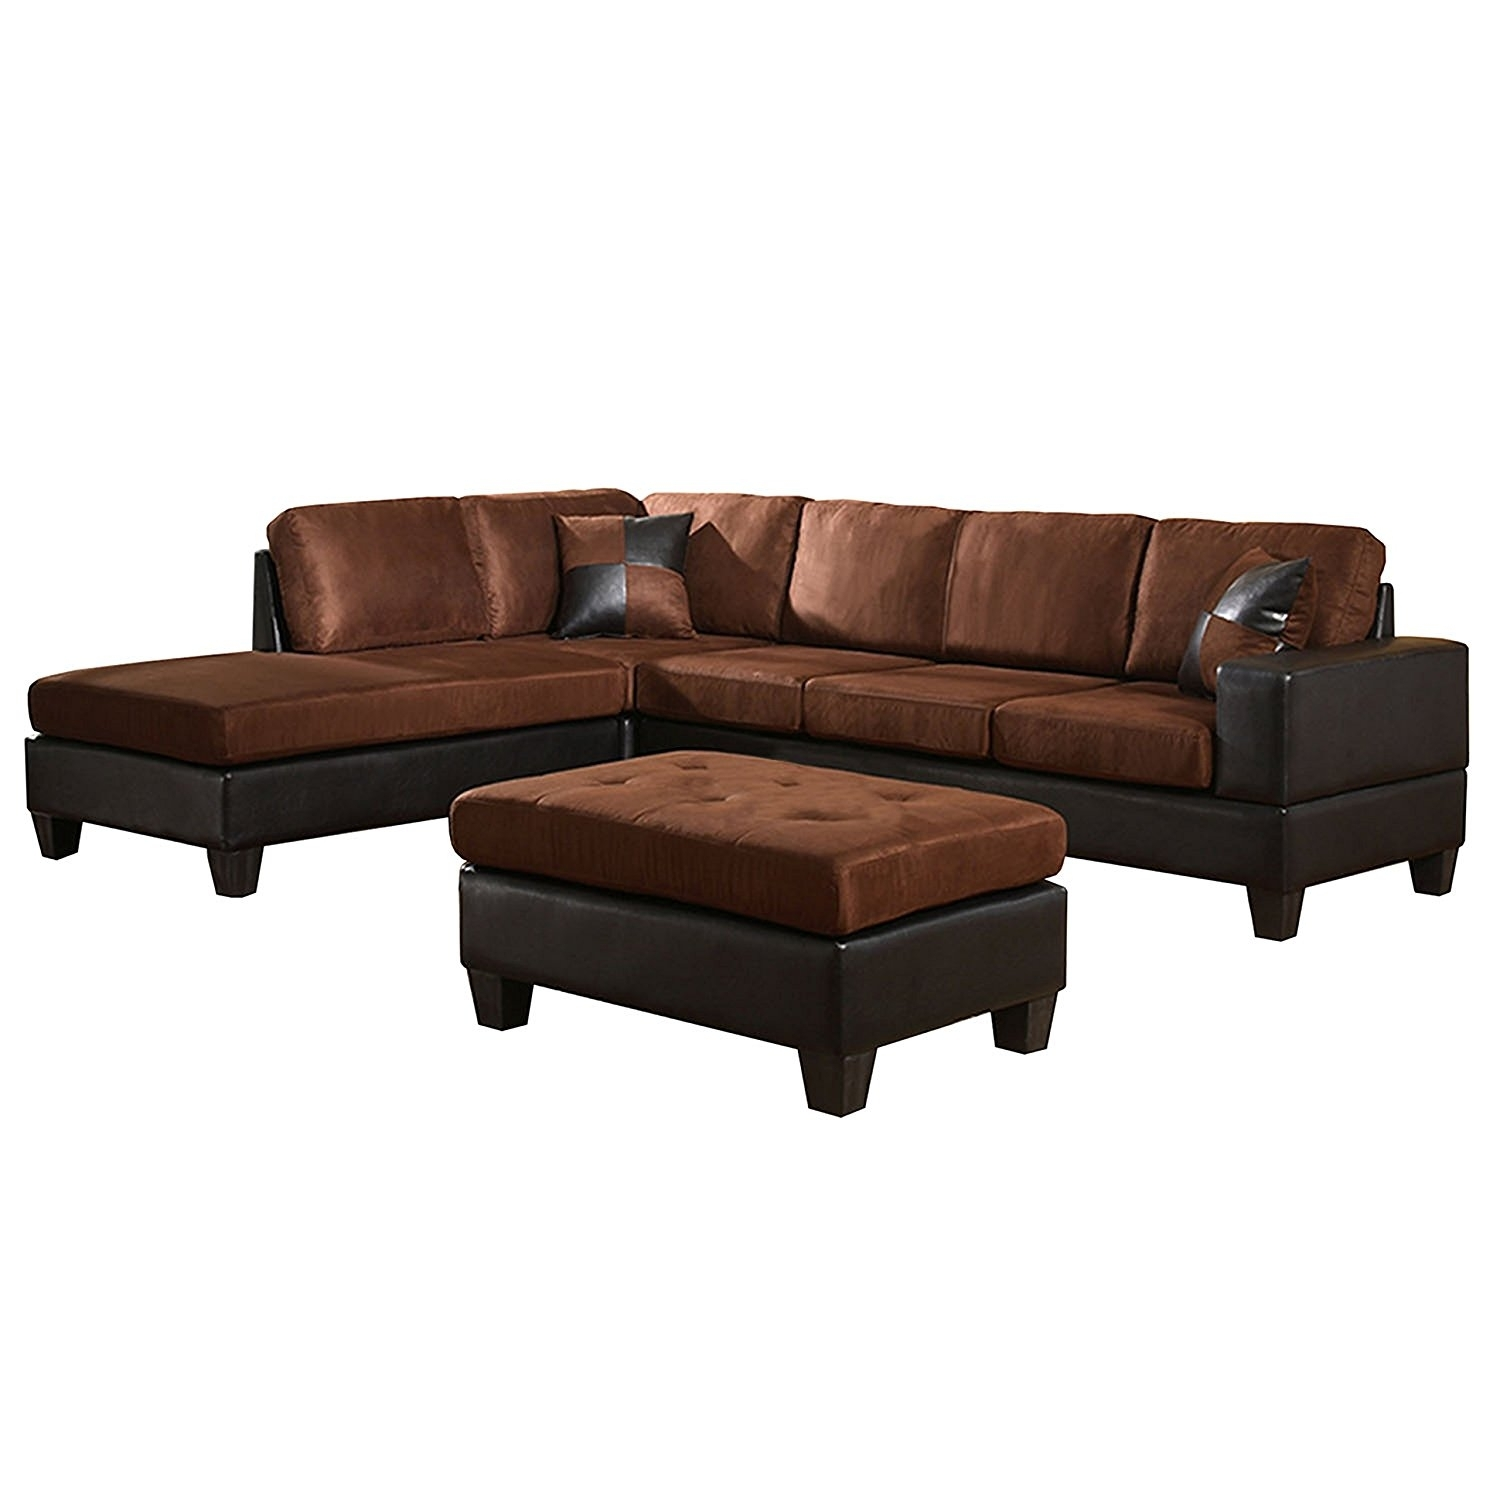 Pride Sierra Microfiber Sectional Sofa With Ott Couch Storage Left With Delano Smoke 3 Piece Sectionals (Image 16 of 25)